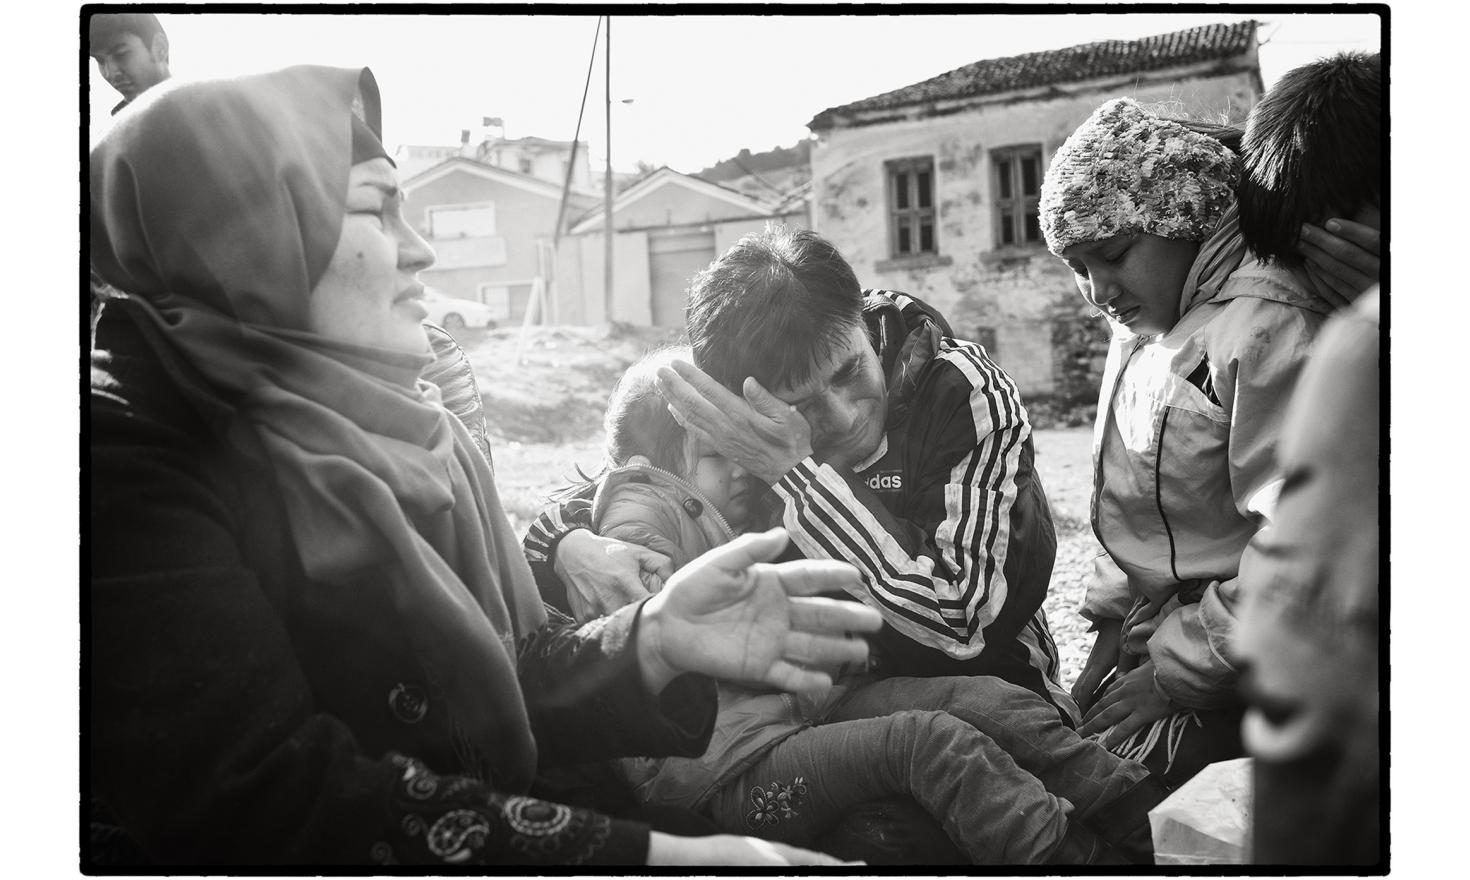 Lesbos, Greece. The passengers in these makeshift boats, and the women and children in particular, are highly traumatised by a crossing they know to be dangerous. Most of them do not know how to swim and have never even seen the sea before.